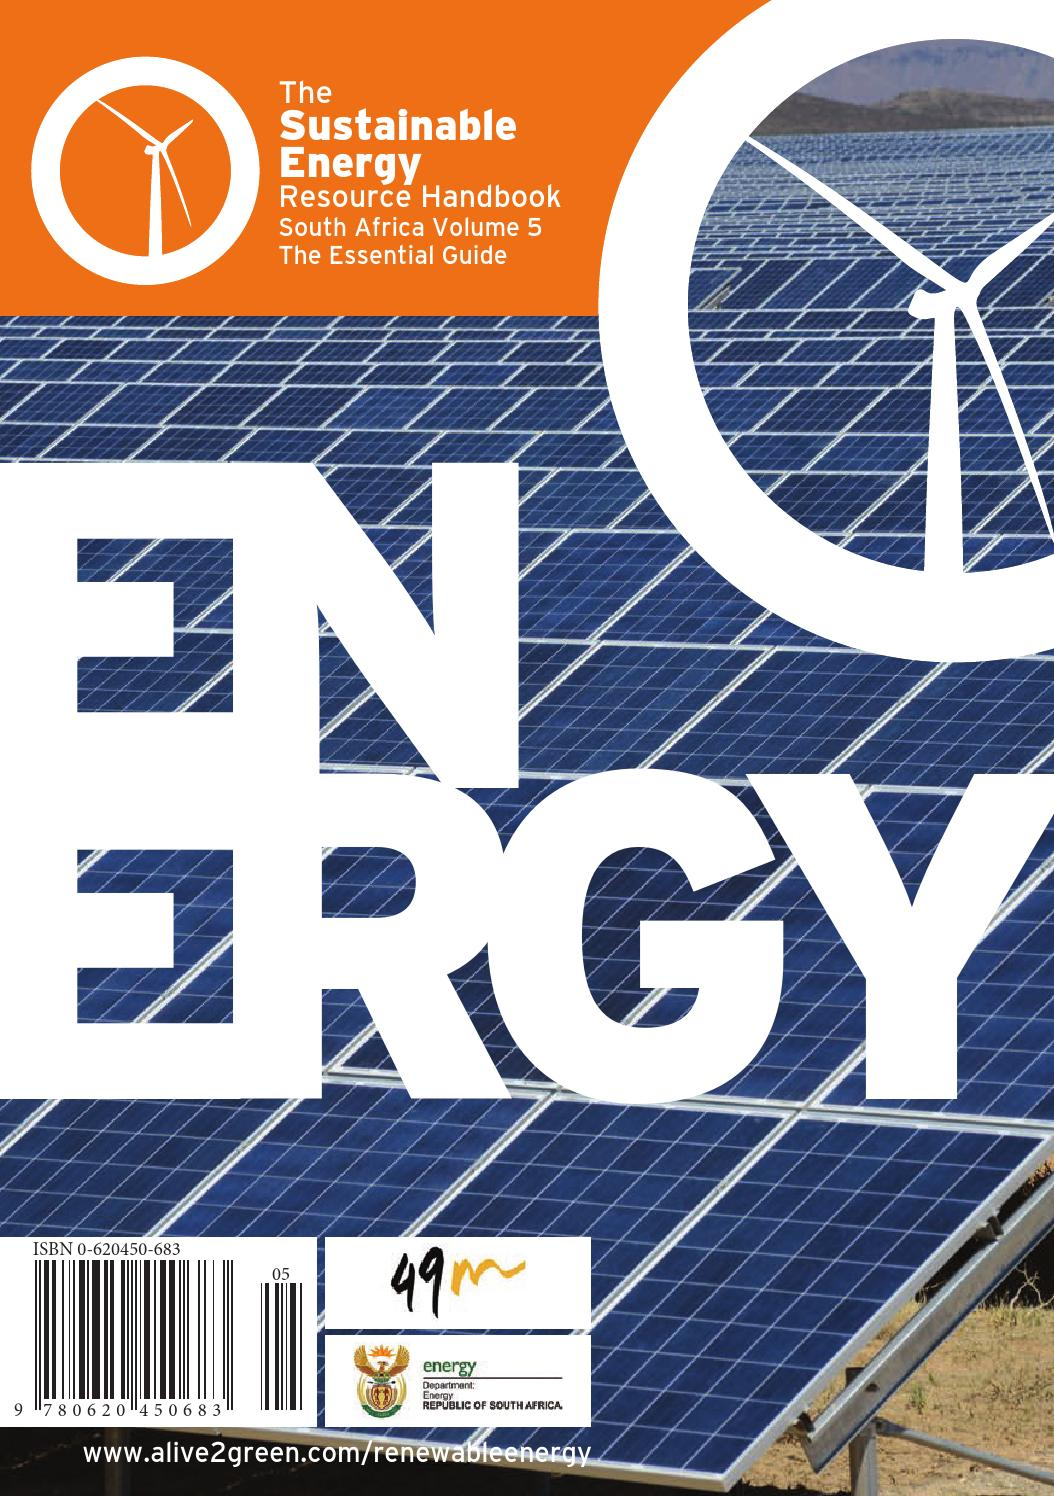 The Sustainable Energy Resource Handbook South Africa Volume 5 By Inverter Circuit Of Induction Heating Rice Cooker Google Patents Alive2green Issuu